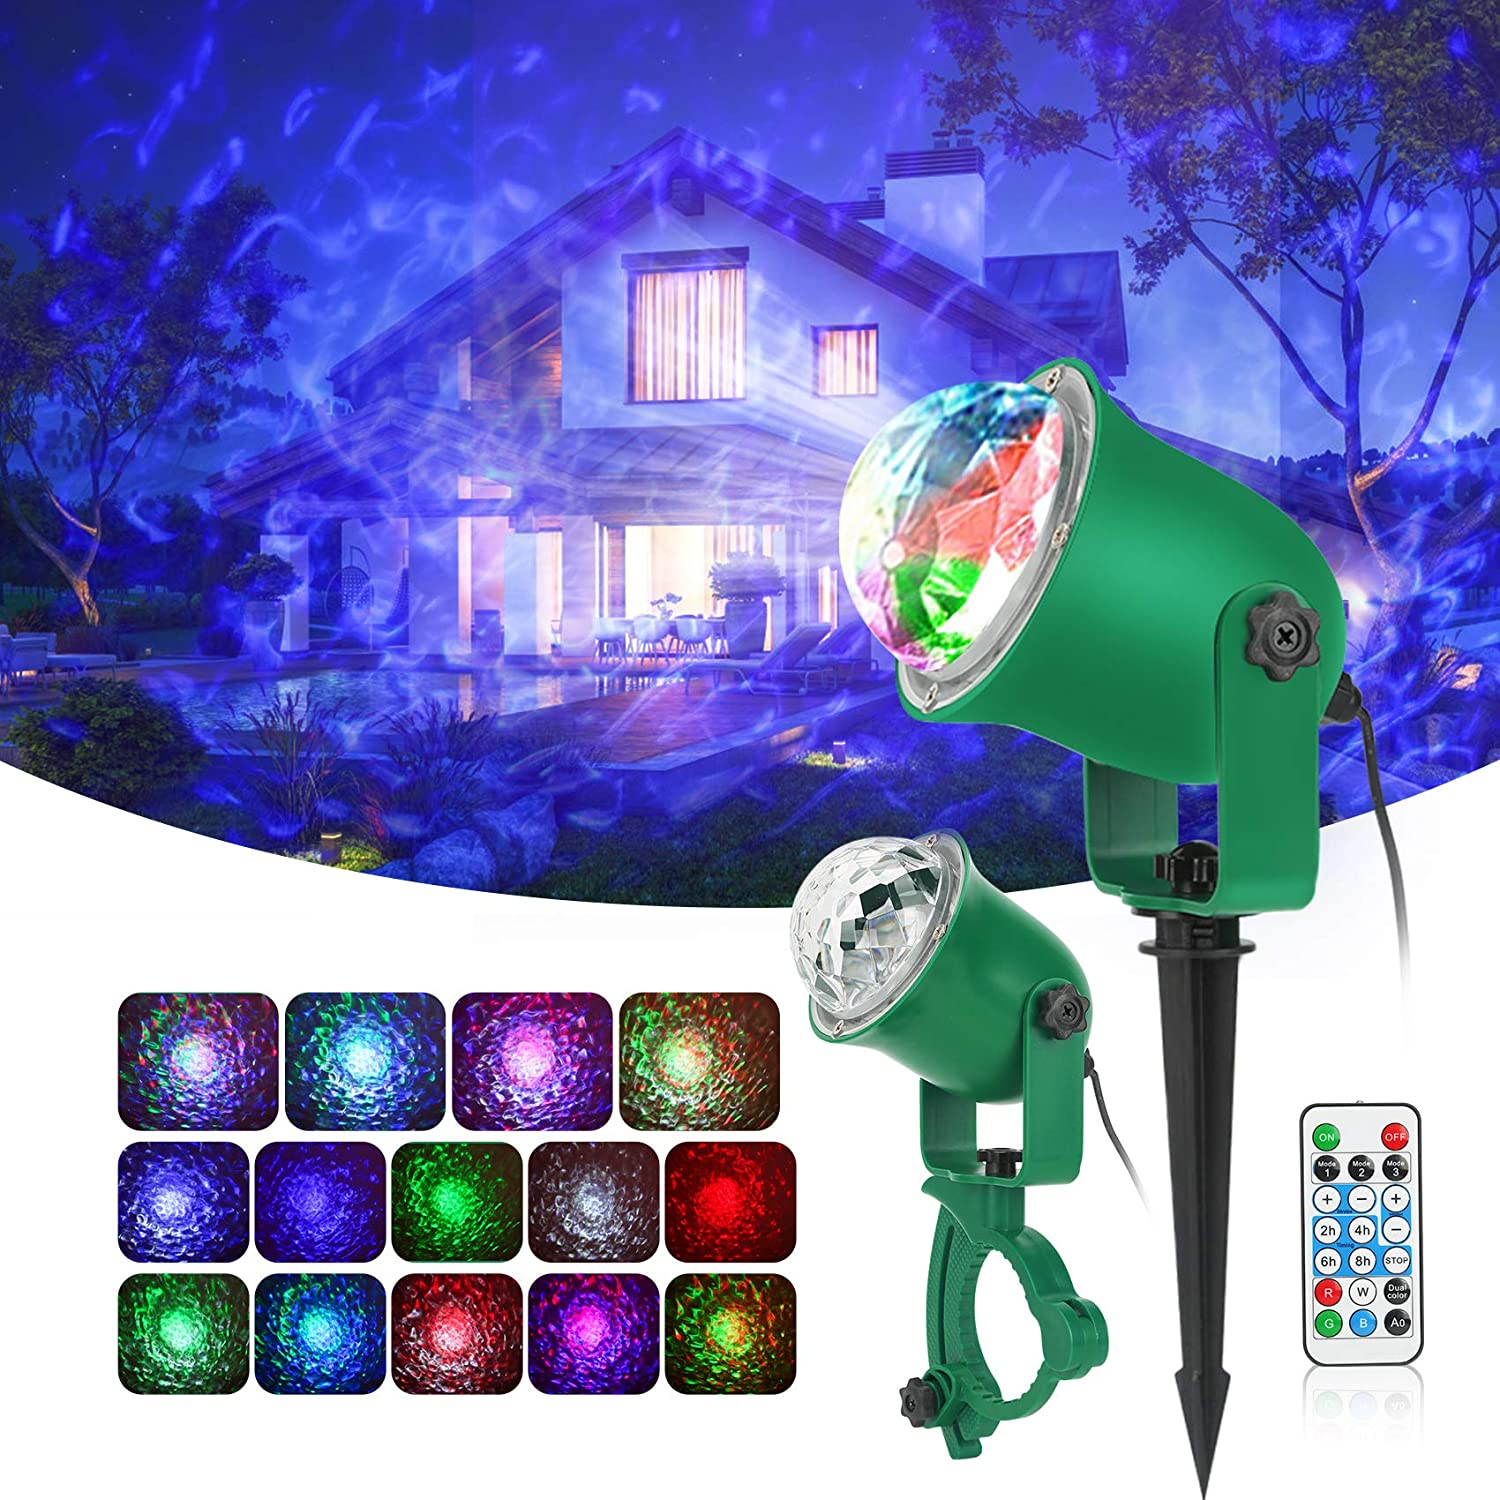 Ocean Wave Light Projector,Indoor Outdoor Holiday Projector Lights with Remote Control,Waterproof LED Landscape Light for Christmas Halloween Wedding Party Garden Landscape Wall Tree Decoration